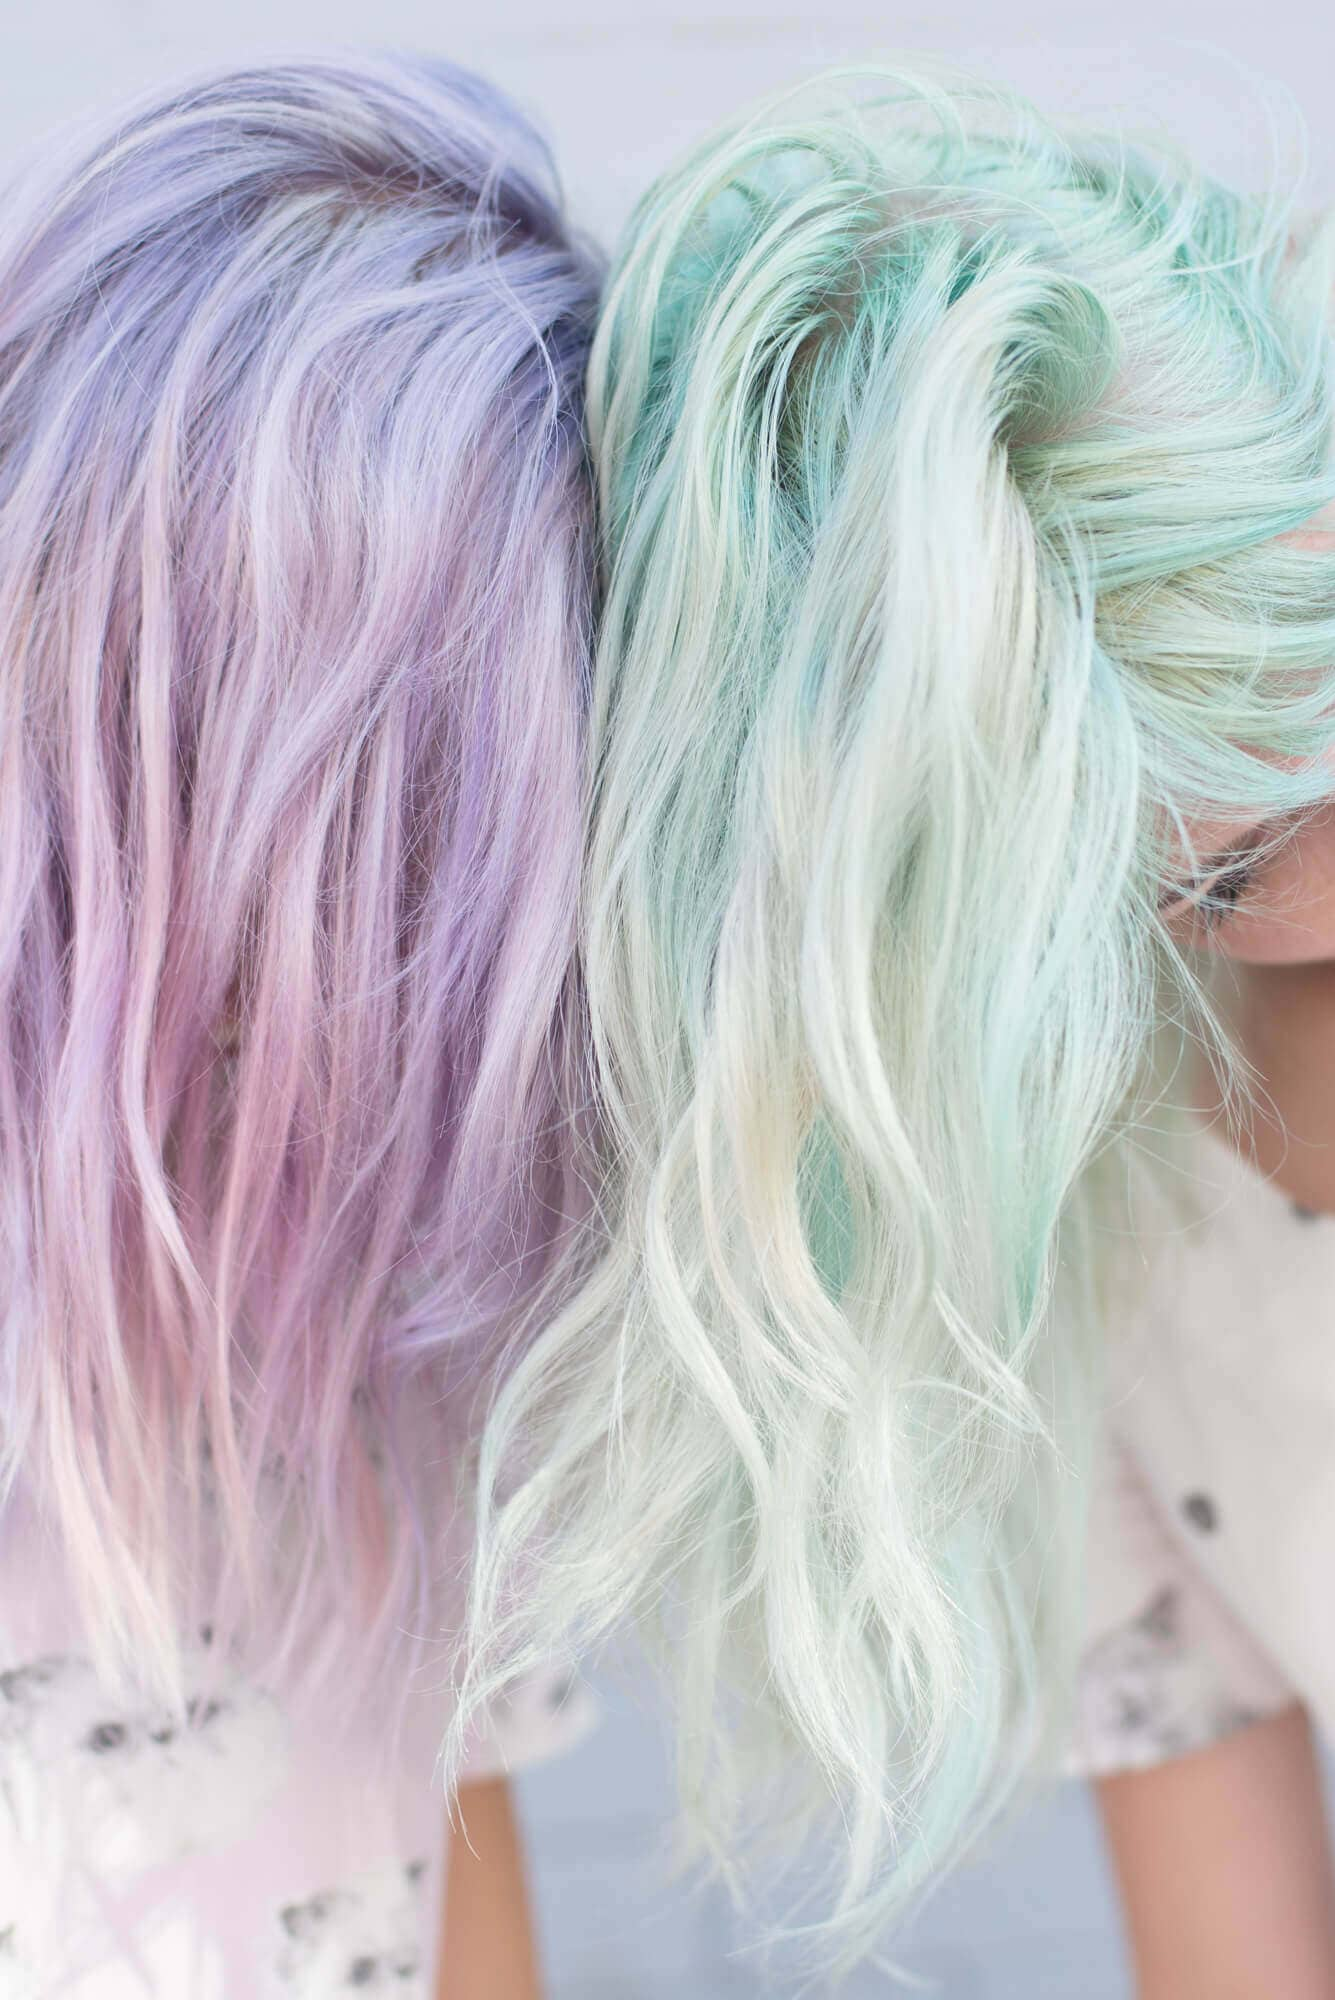 Two Friends with Pastel Hair